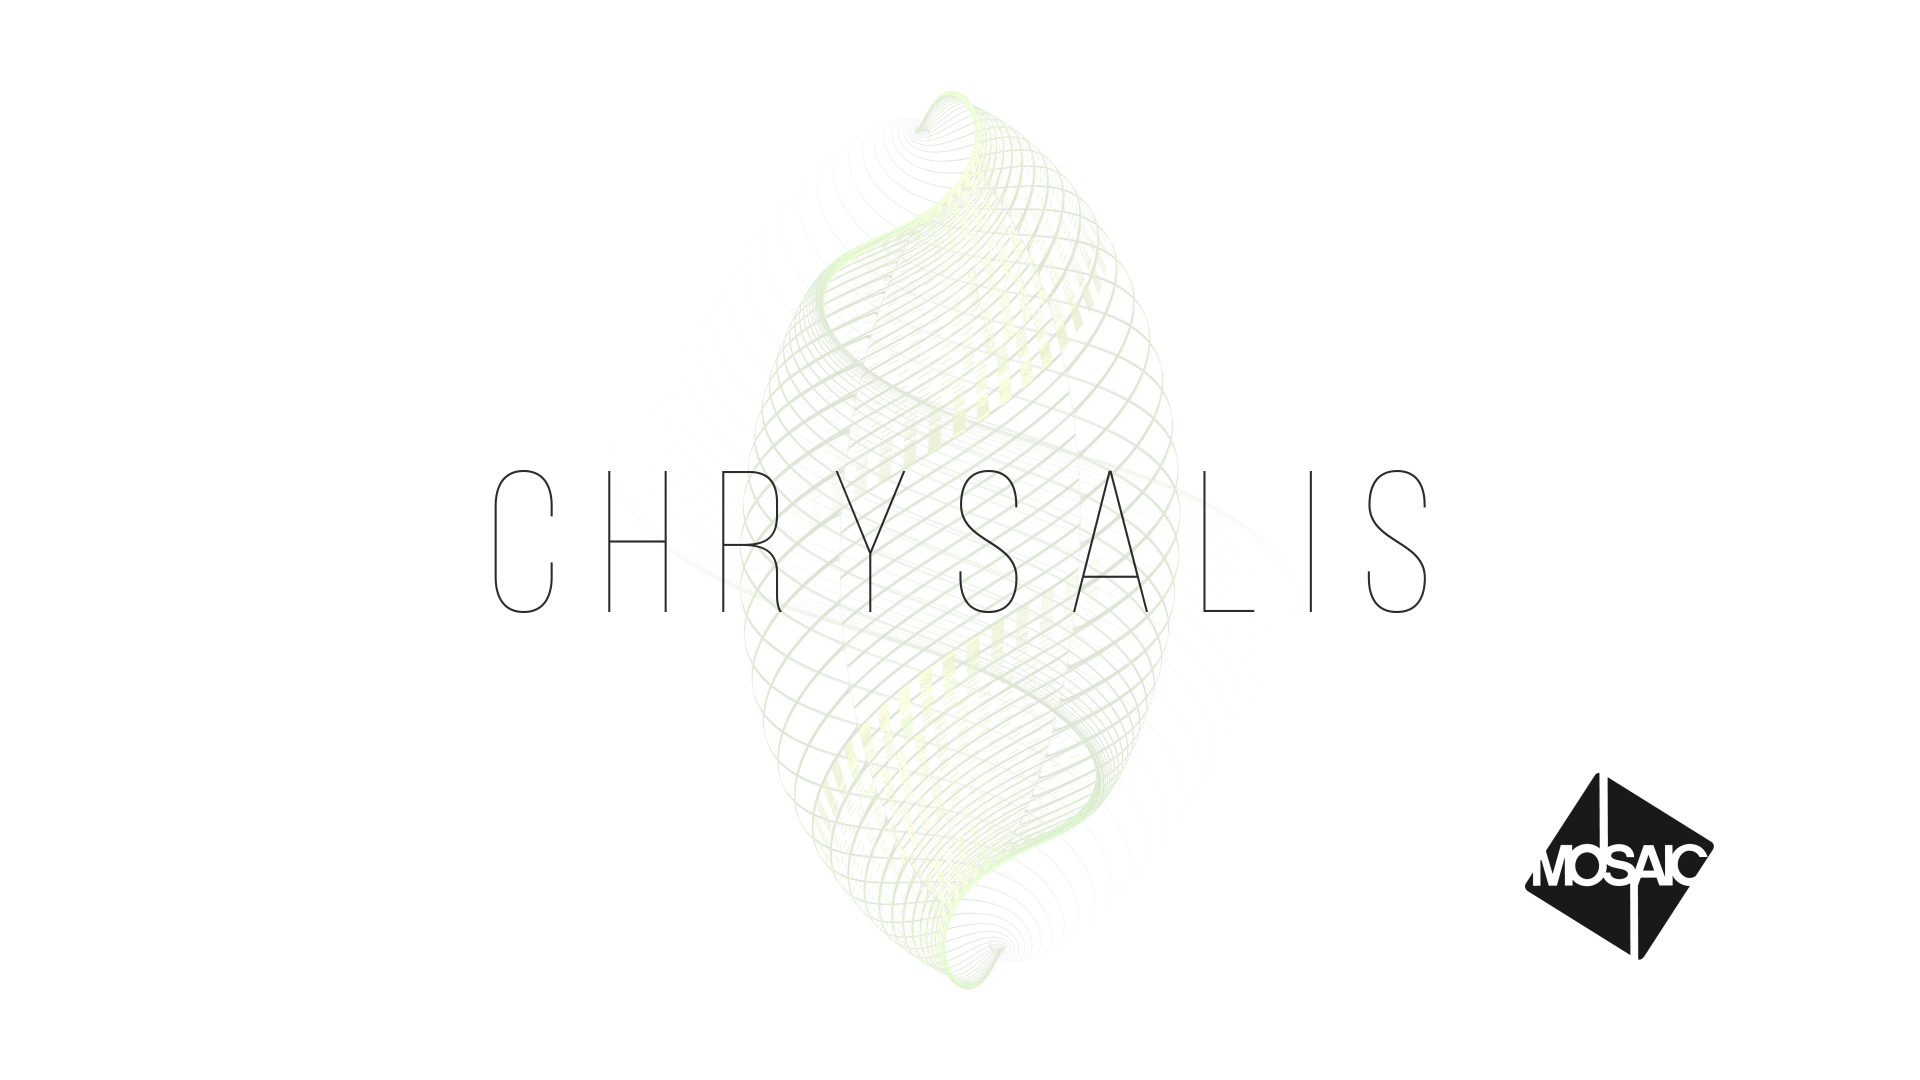 Chrysalis: Week 4